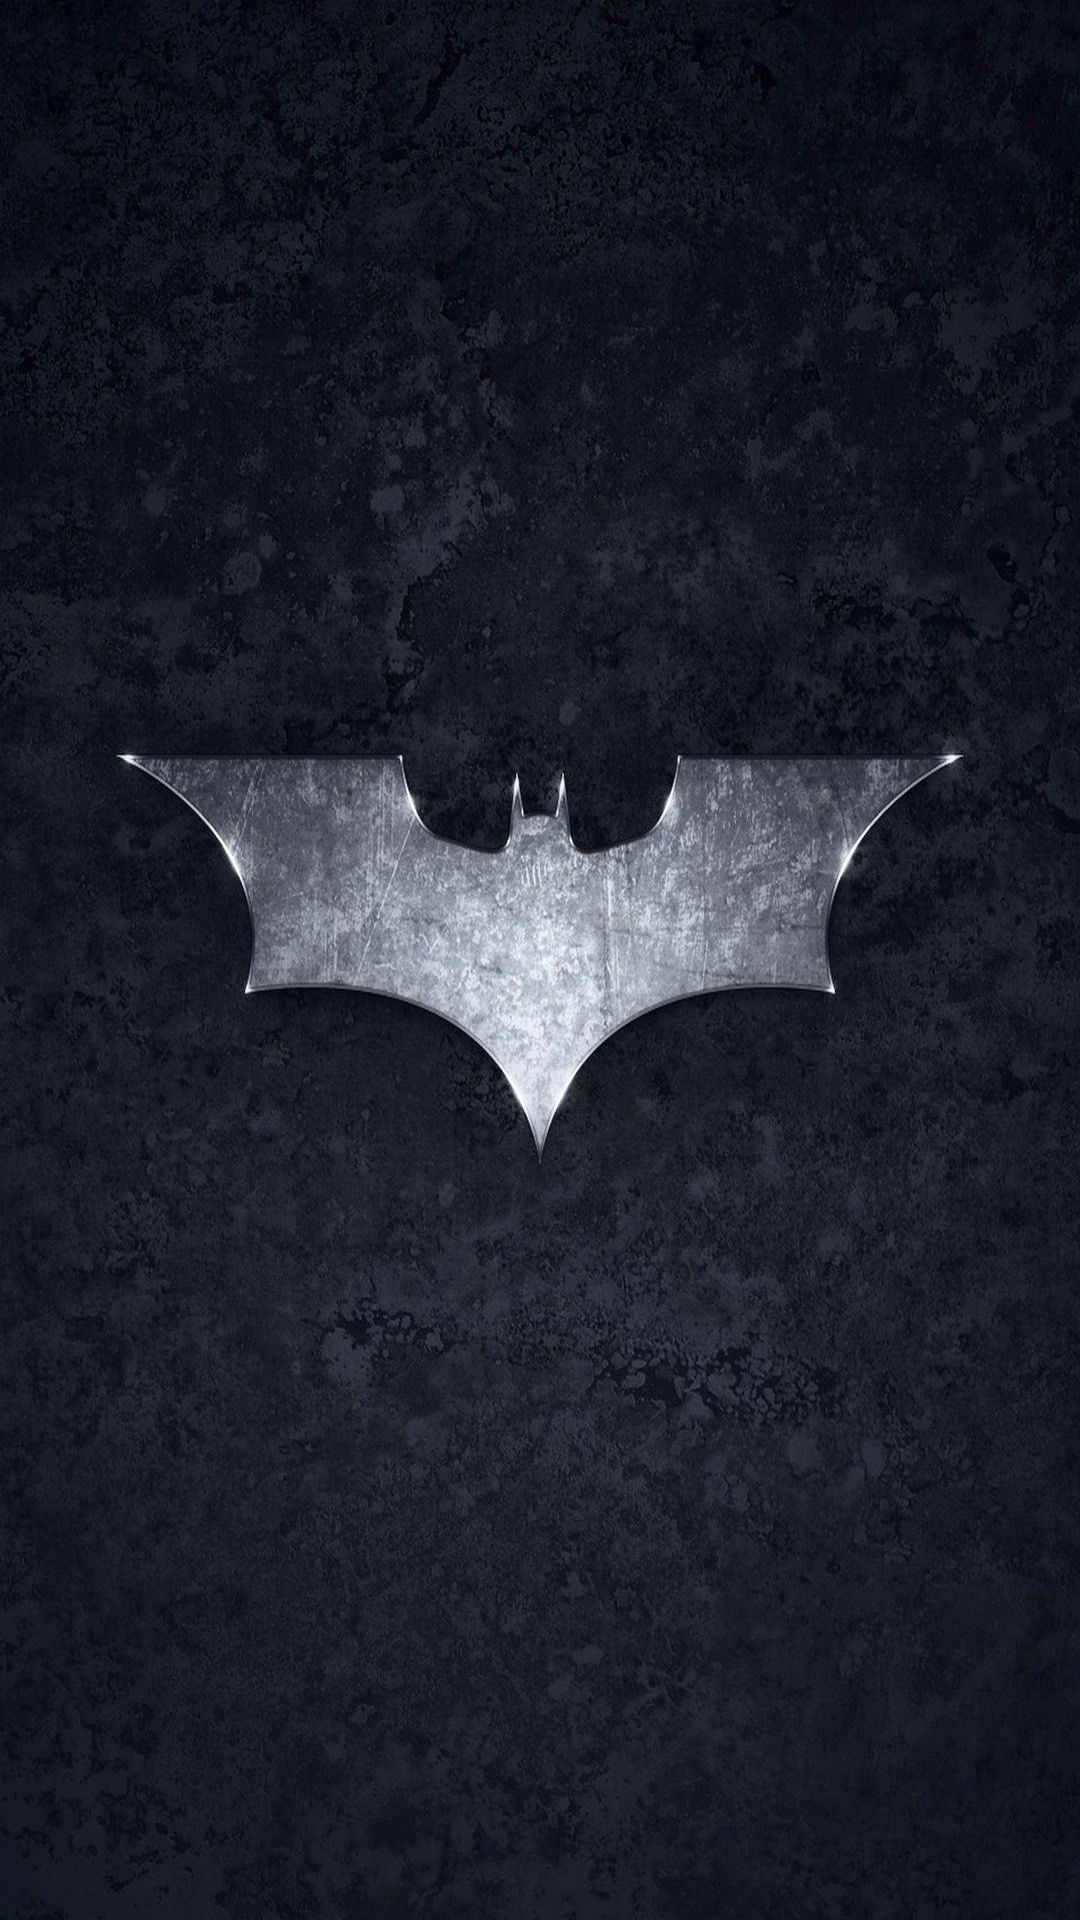 Batman Lock Screen Wallpaper In 2020 Lock Screen Wallpaper Android Batman Wallpaper Batman Wallpaper Iphone